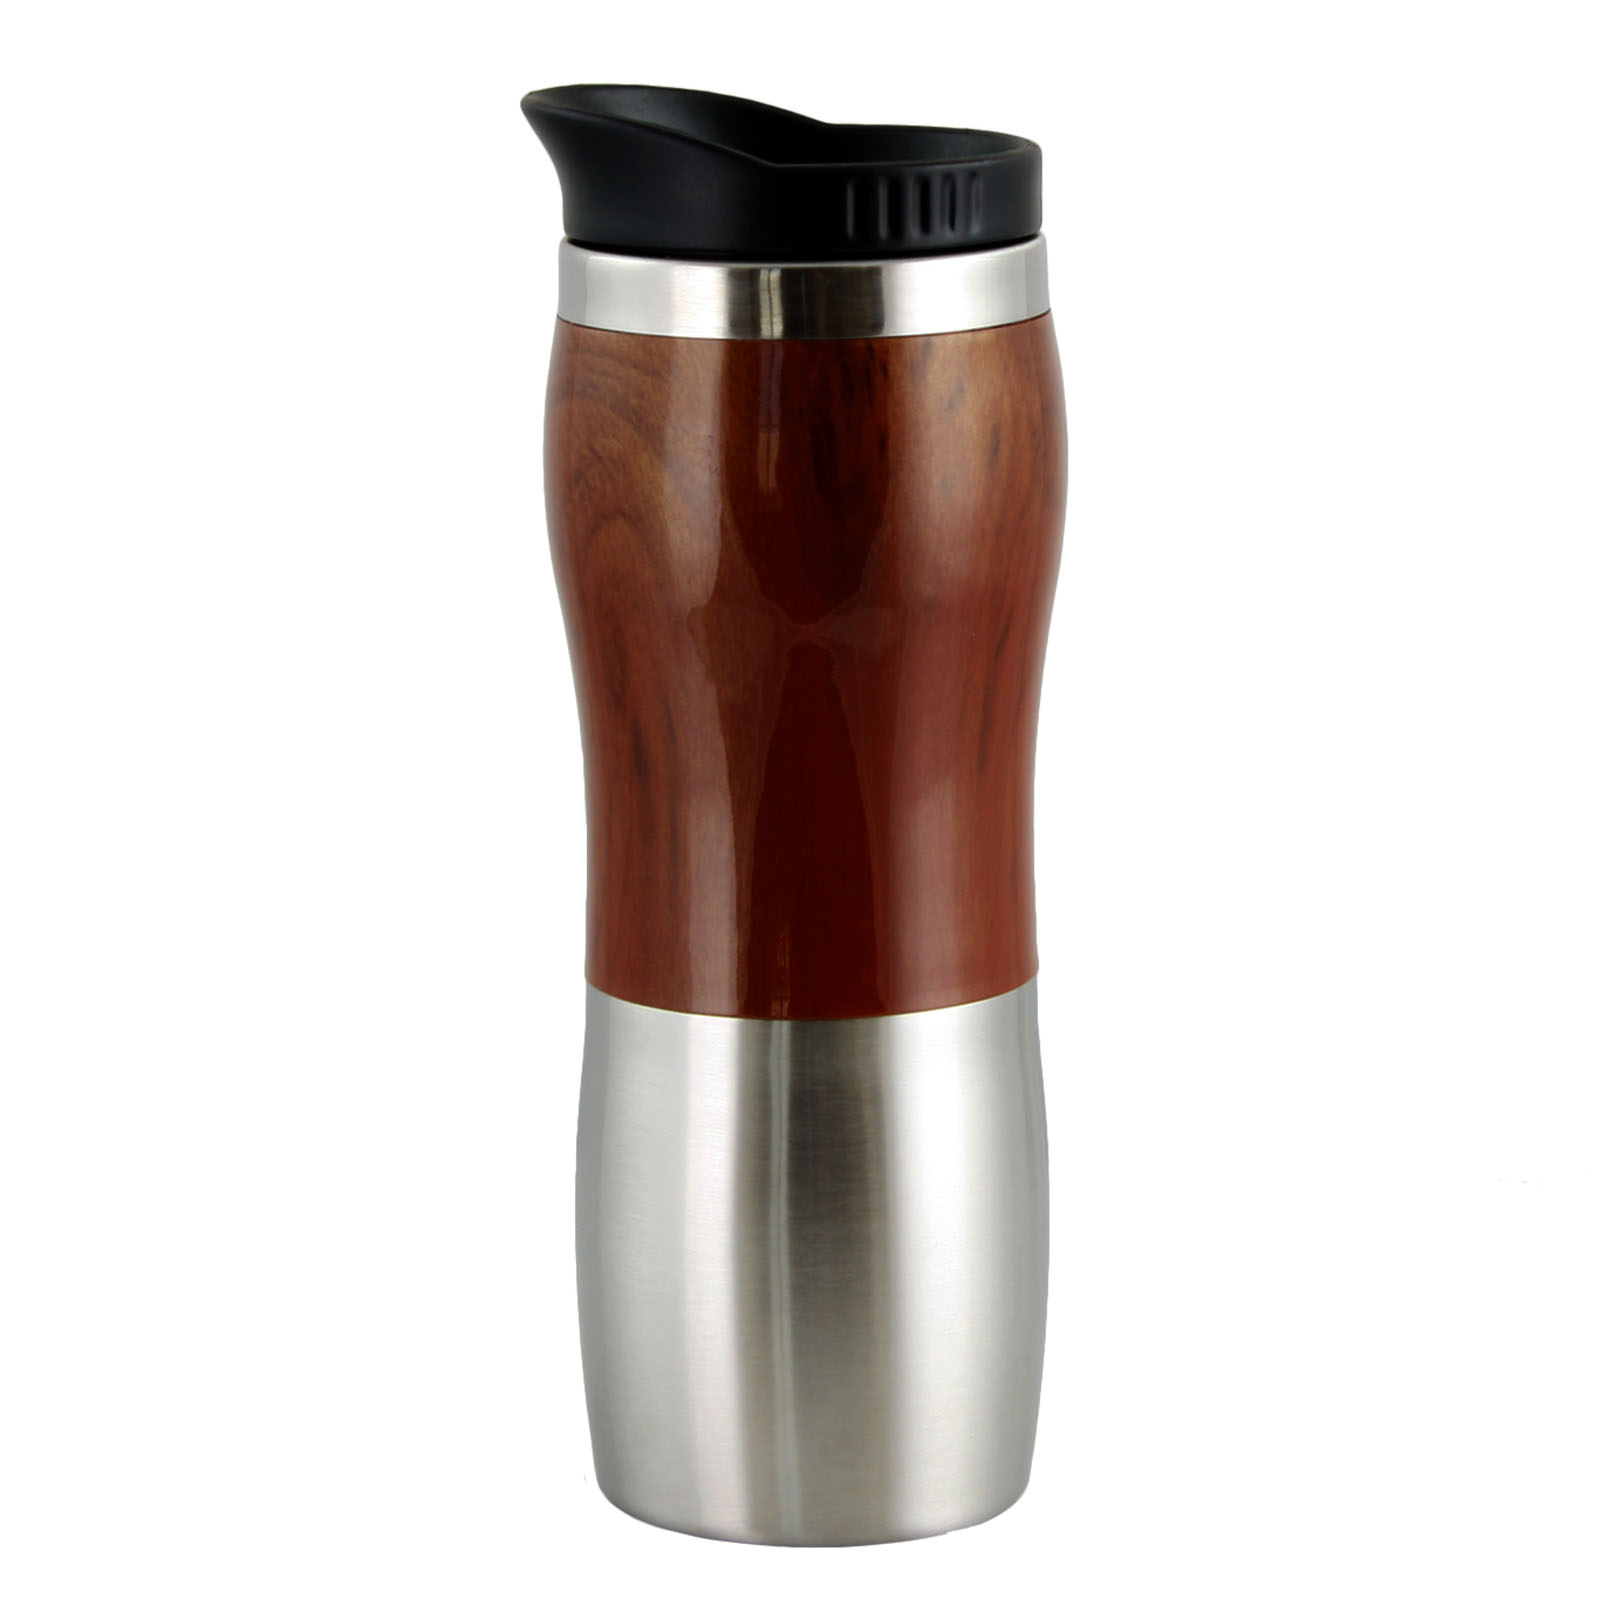 Gibson Monaco Cafe  Double Wall Travel Mug with Lid PartNumber: 00842342000P KsnValue: 2989500 MfgPartNumber: 97086607M